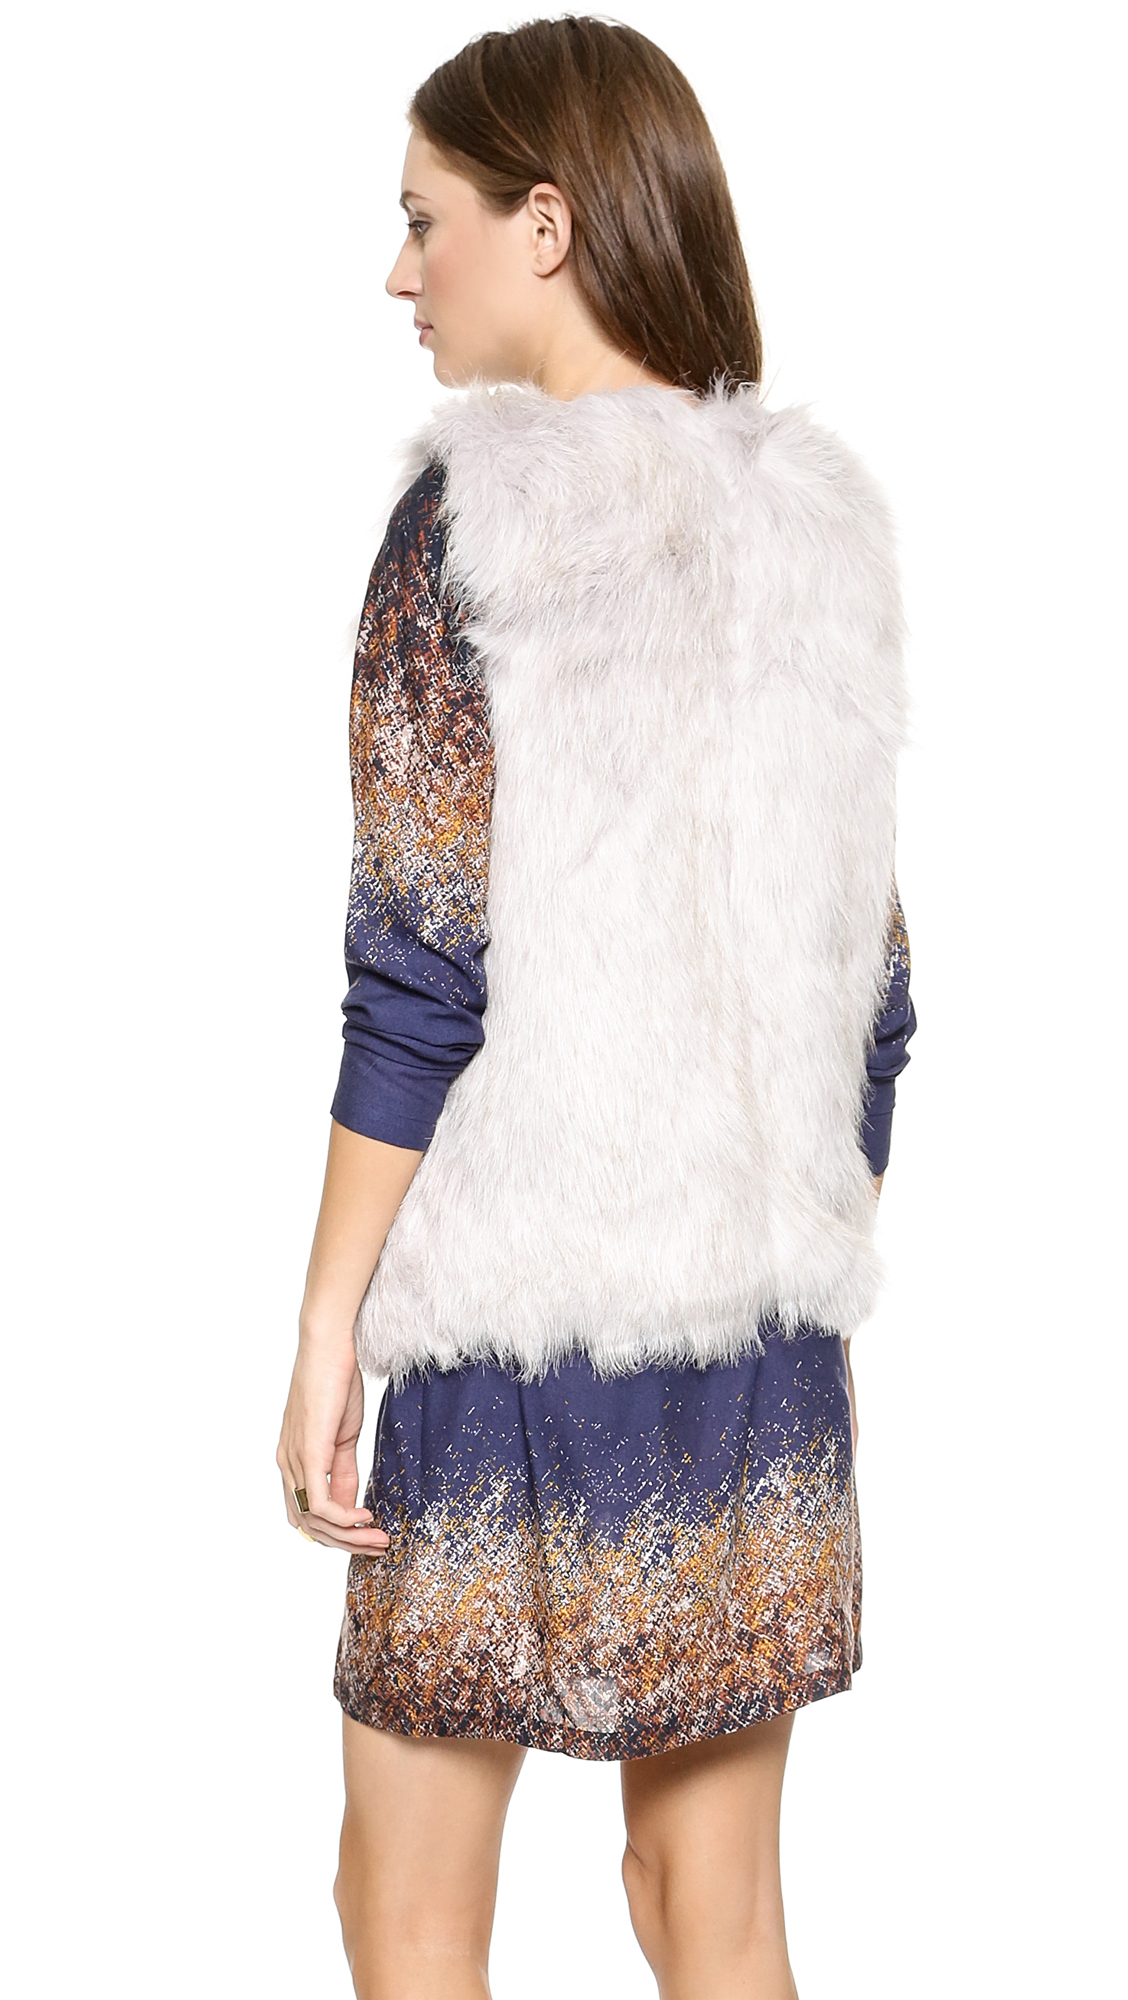 Free shipping and guaranteed authenticity on Gap Cream Faux Fur Vest Size 8 (M)Gap faux fur vest with pockets. Size medium.